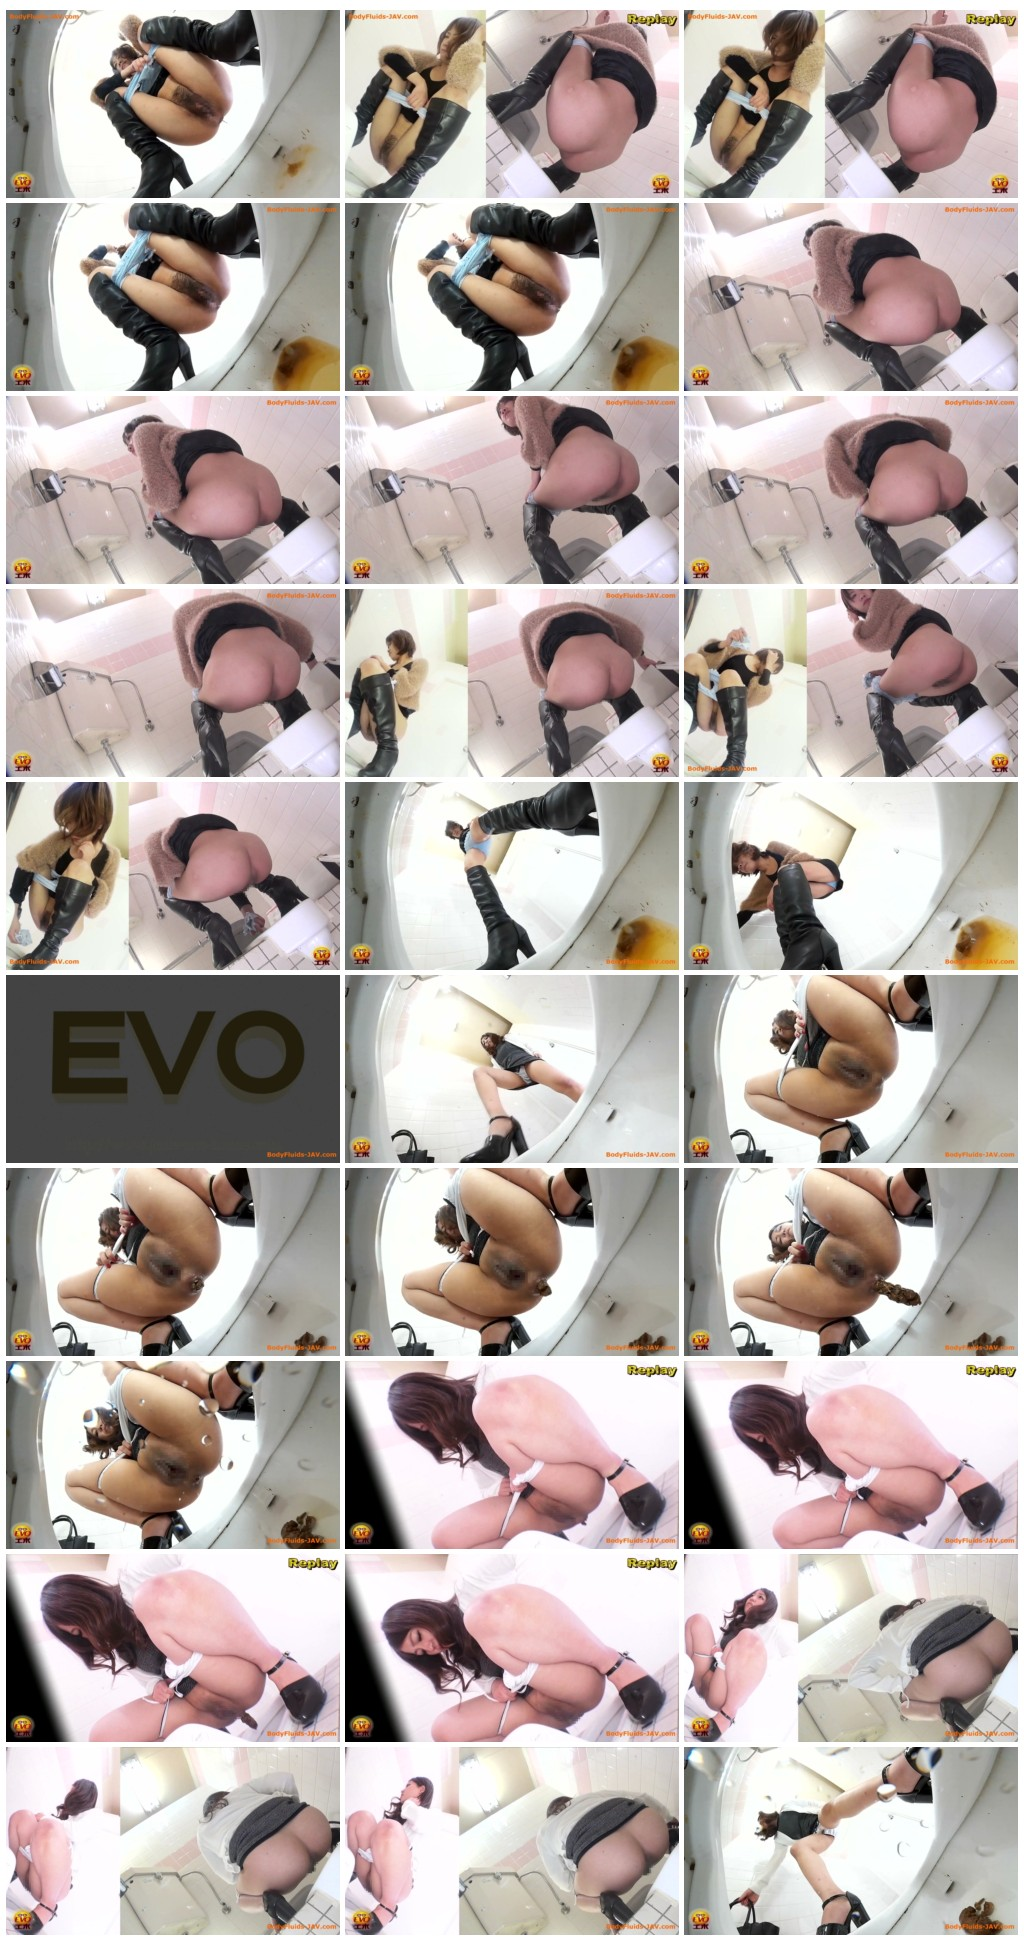 [JVC - 0032] Defecating and urinating girls in public toilet. [HD 1080p]